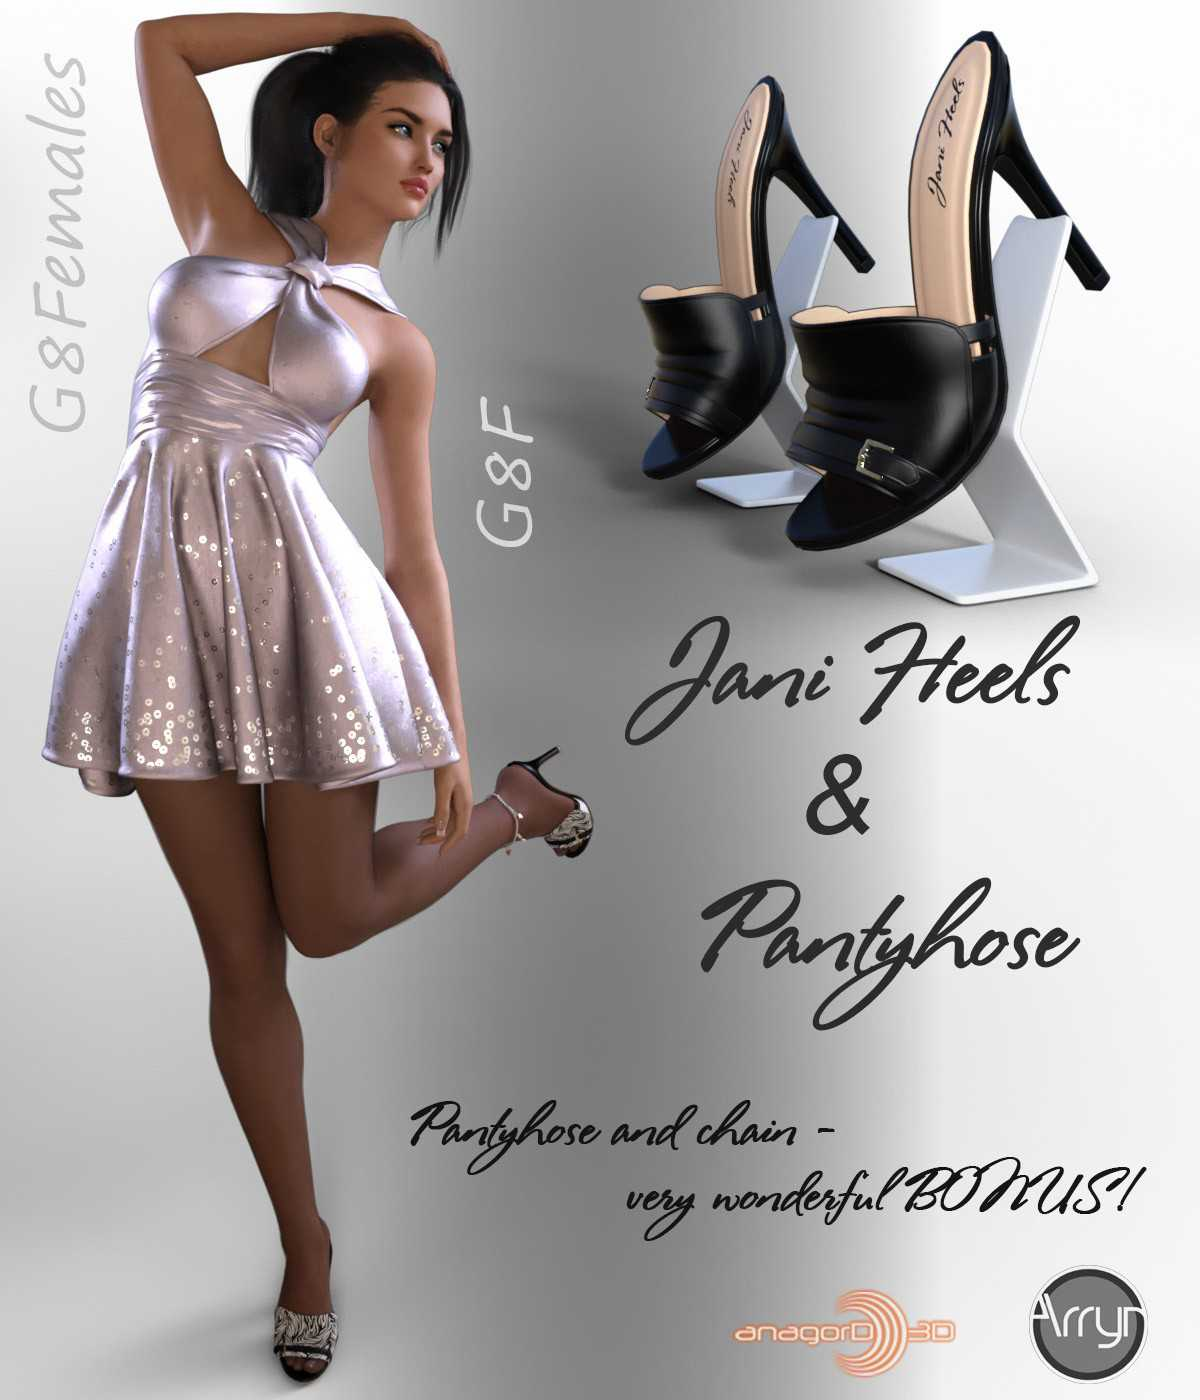 Jani Heels and Pantyhose G8F